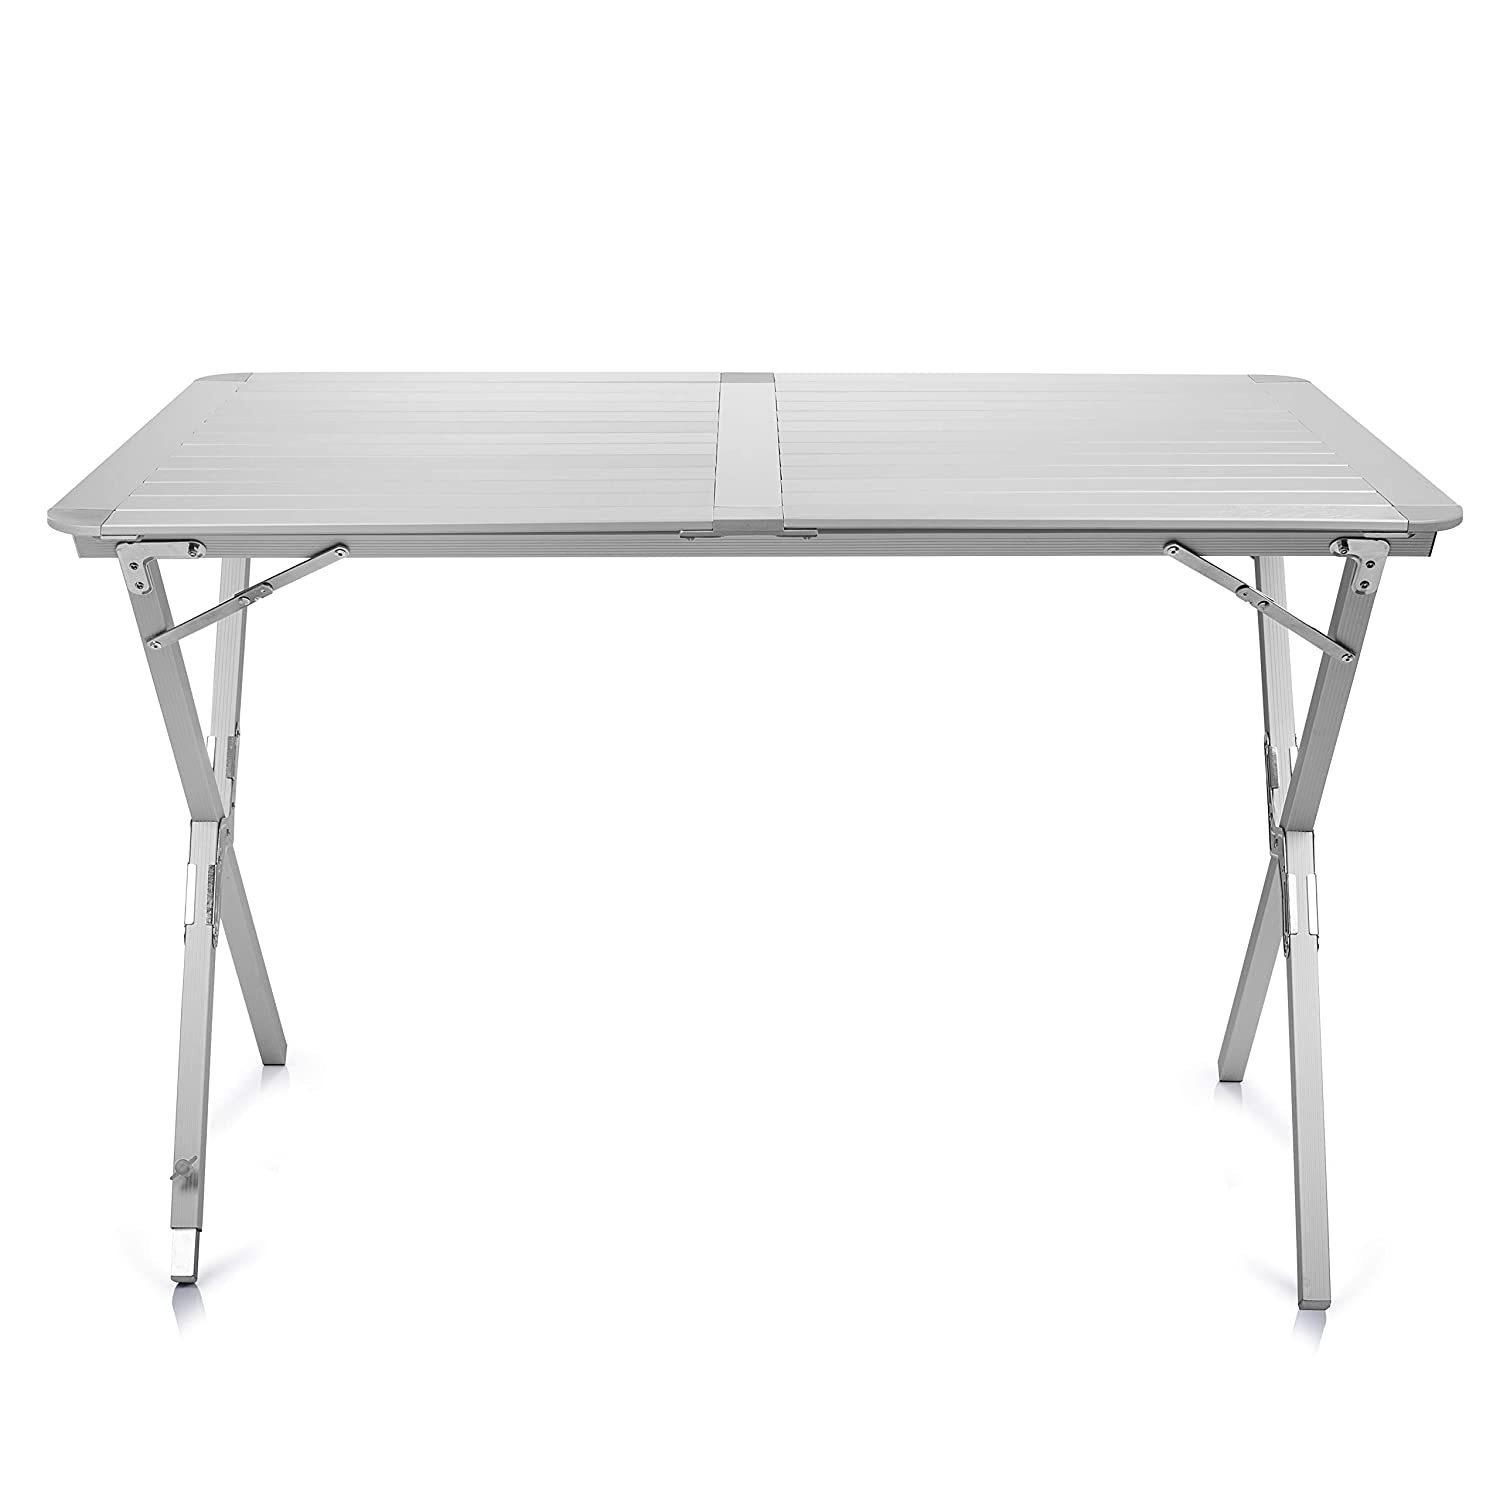 Campart Travel TA-0802 Camping Table Texas 110 x 70 x 70cm